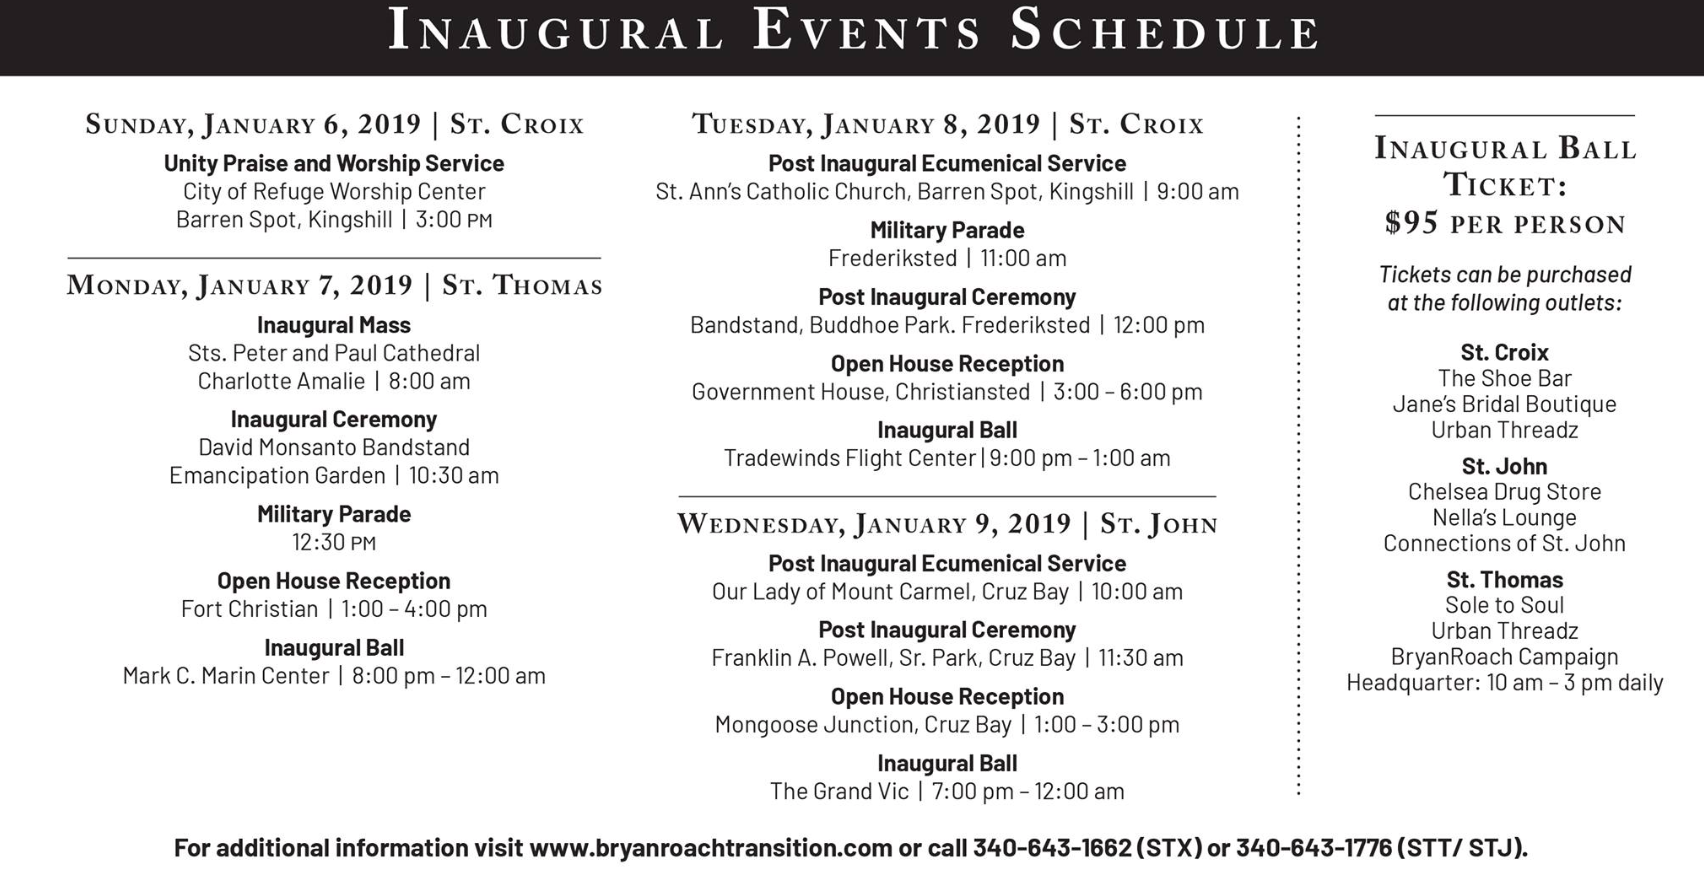 Inauguration Schedule Of Events 2019 Transition begins: Bryan Roach inauguration schedule – CBS USVI